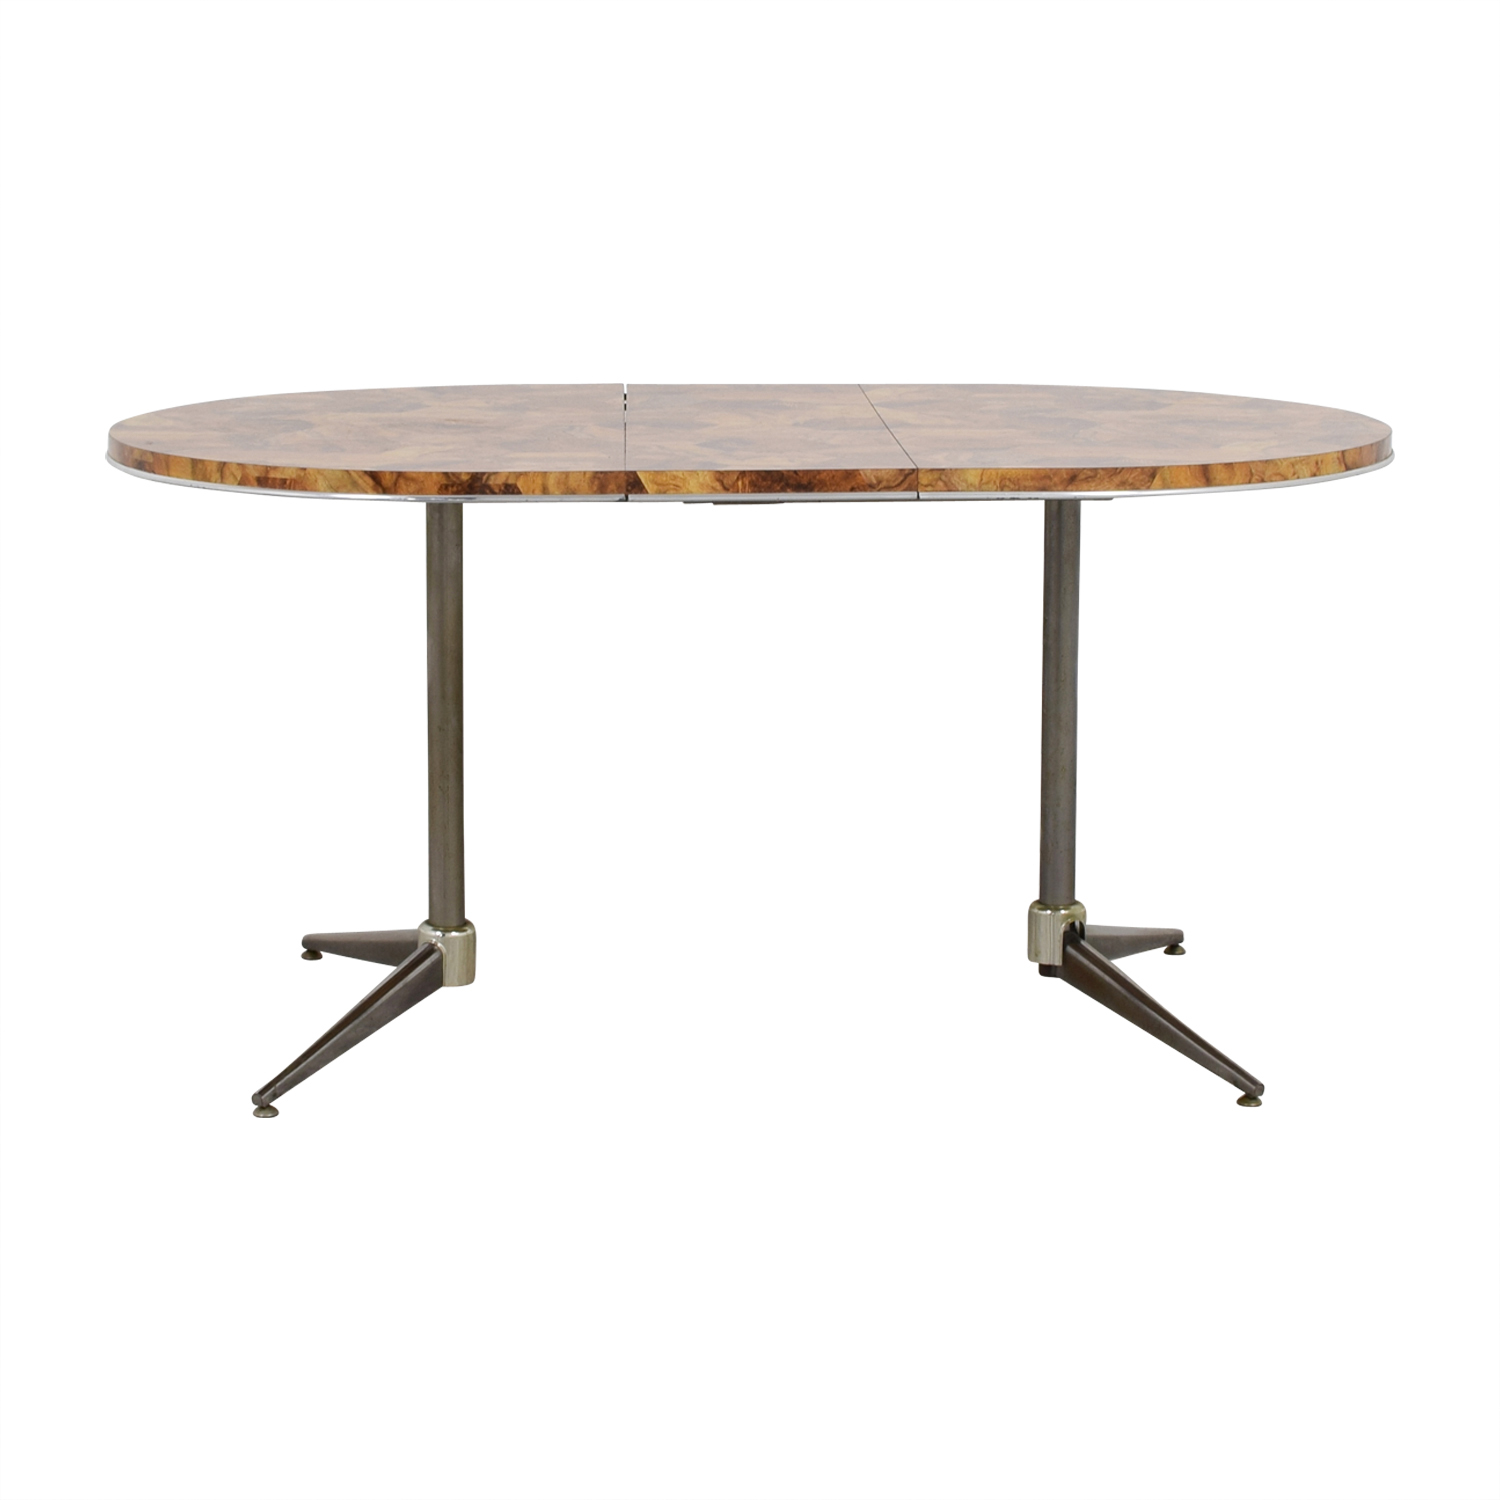 Faux Wood Top and Metal Oval Table dimensions